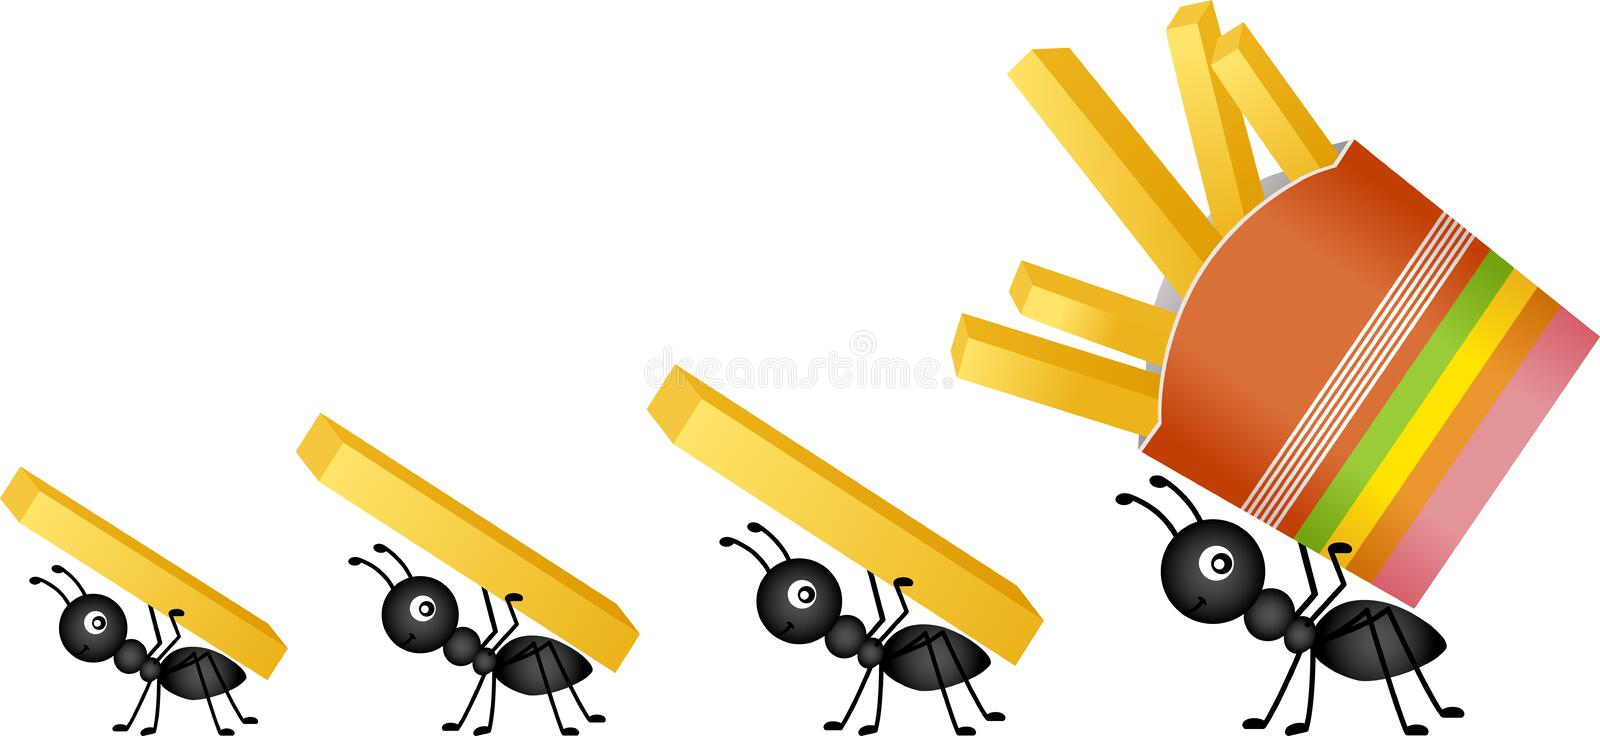 Ants carrying french fries stock illustration